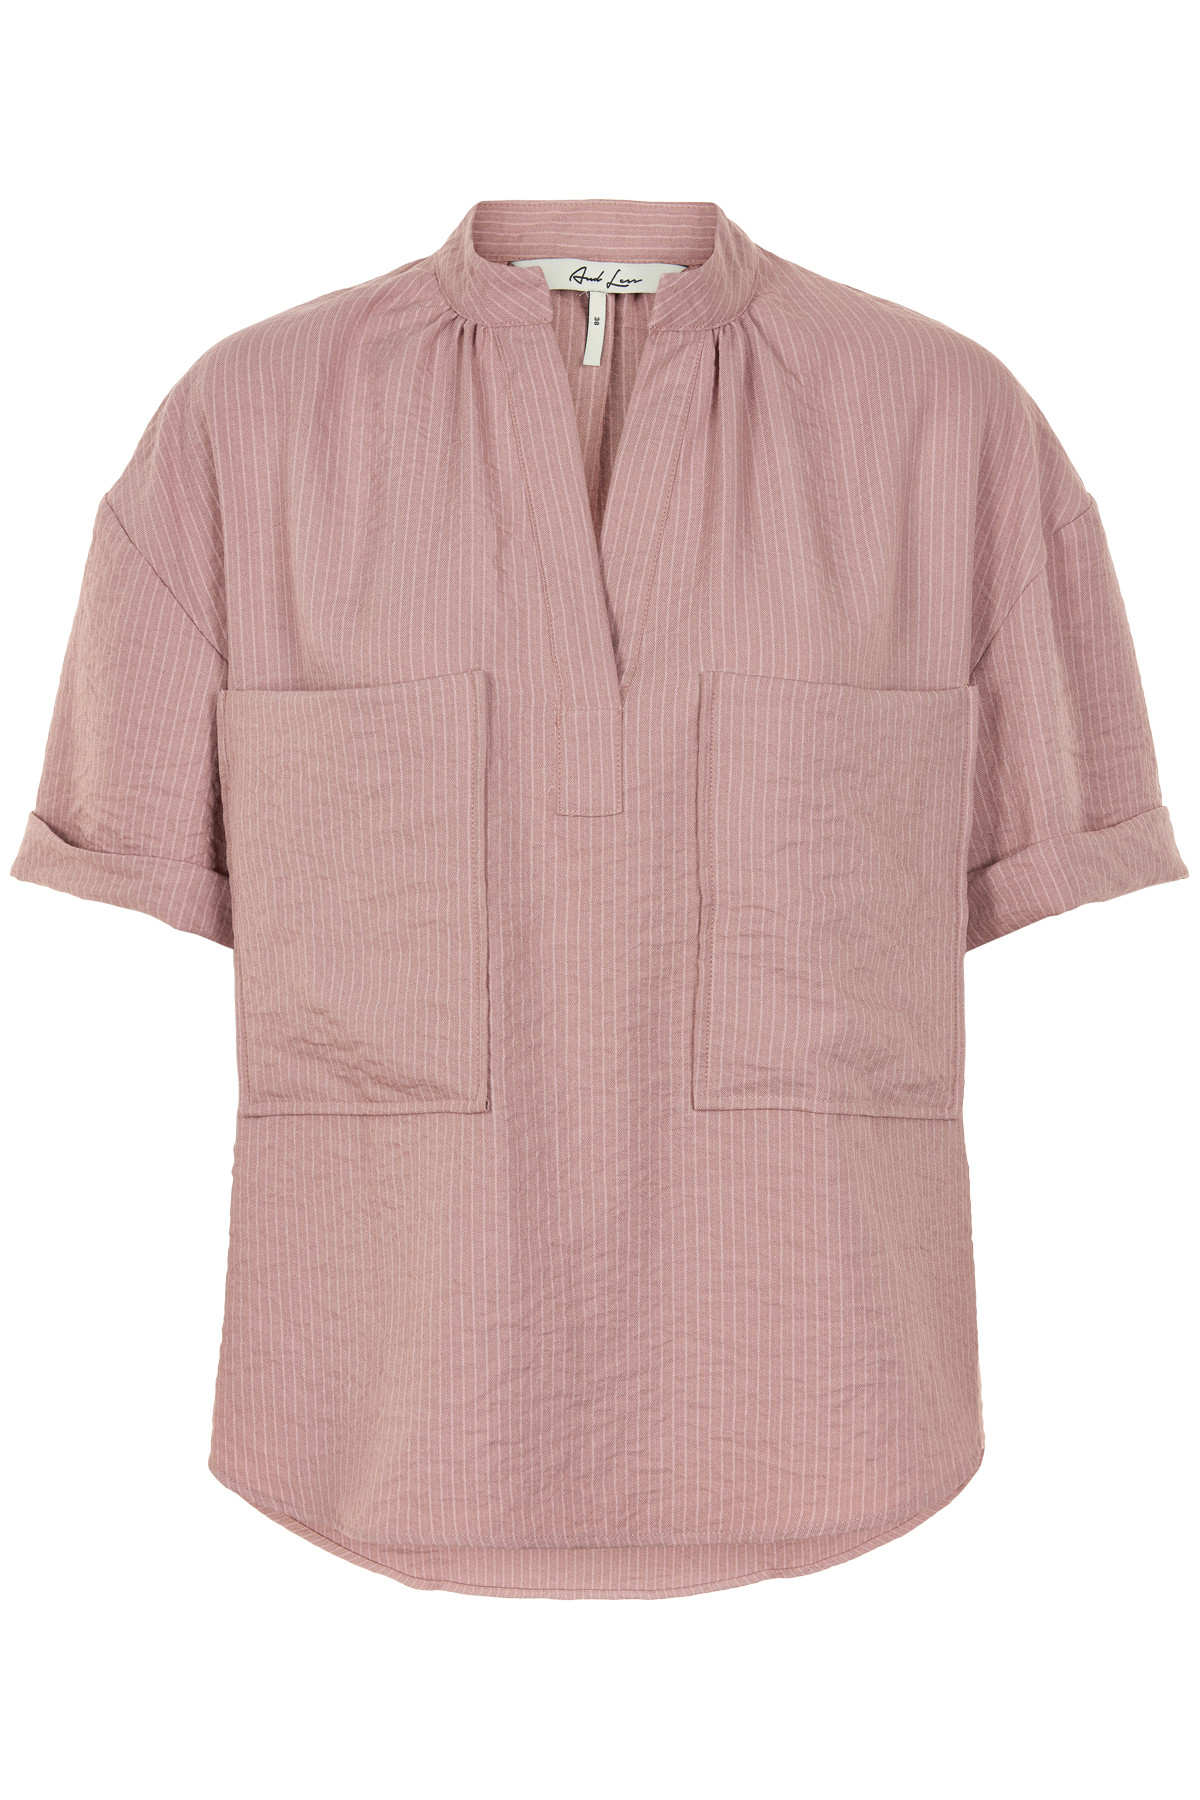 Image of   AND LESS ORIBELLA BLUSE 5219017 A (Ash Rose, 34)